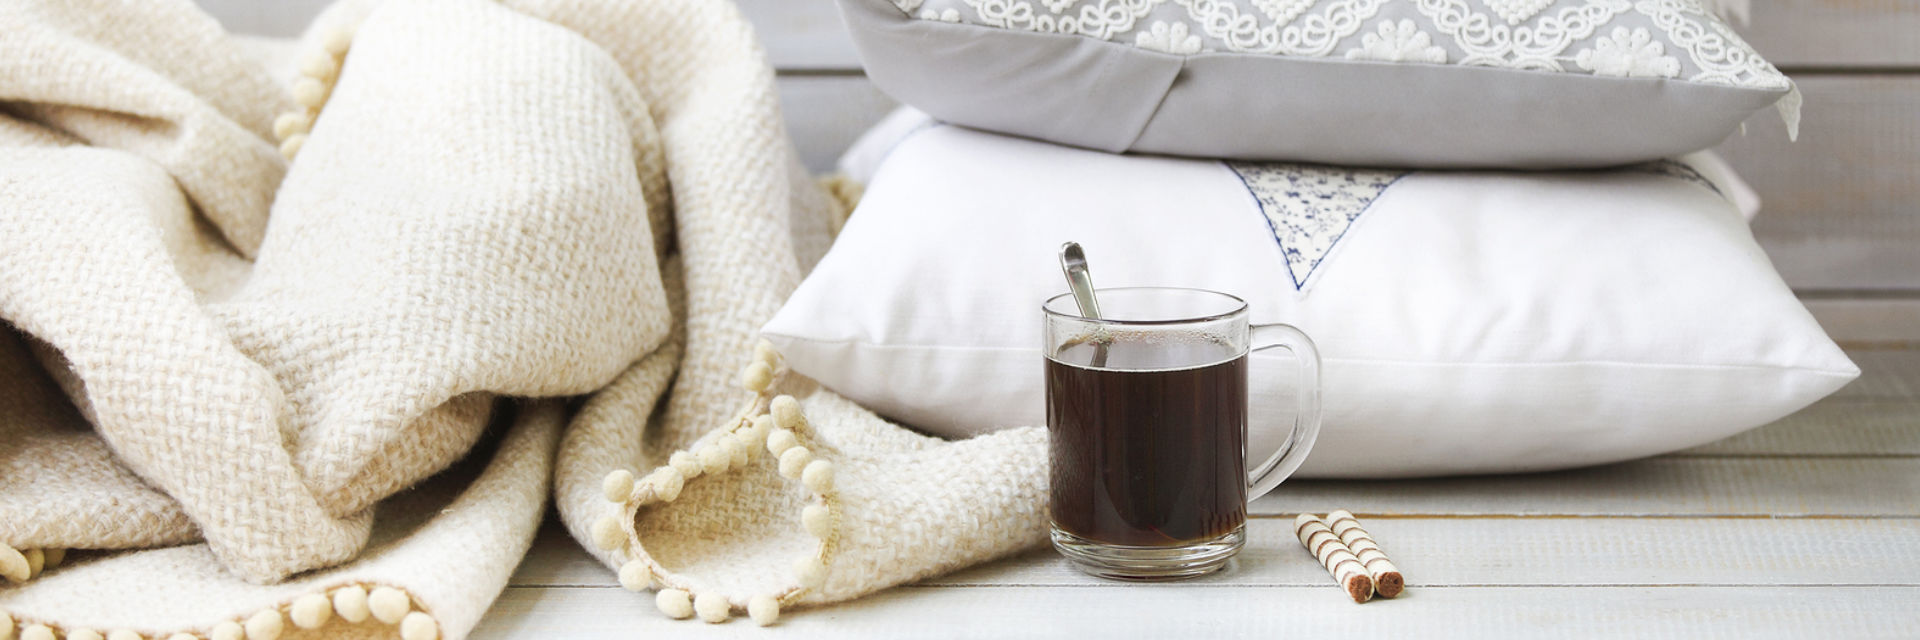 hot drink next to a blanket and two pillows